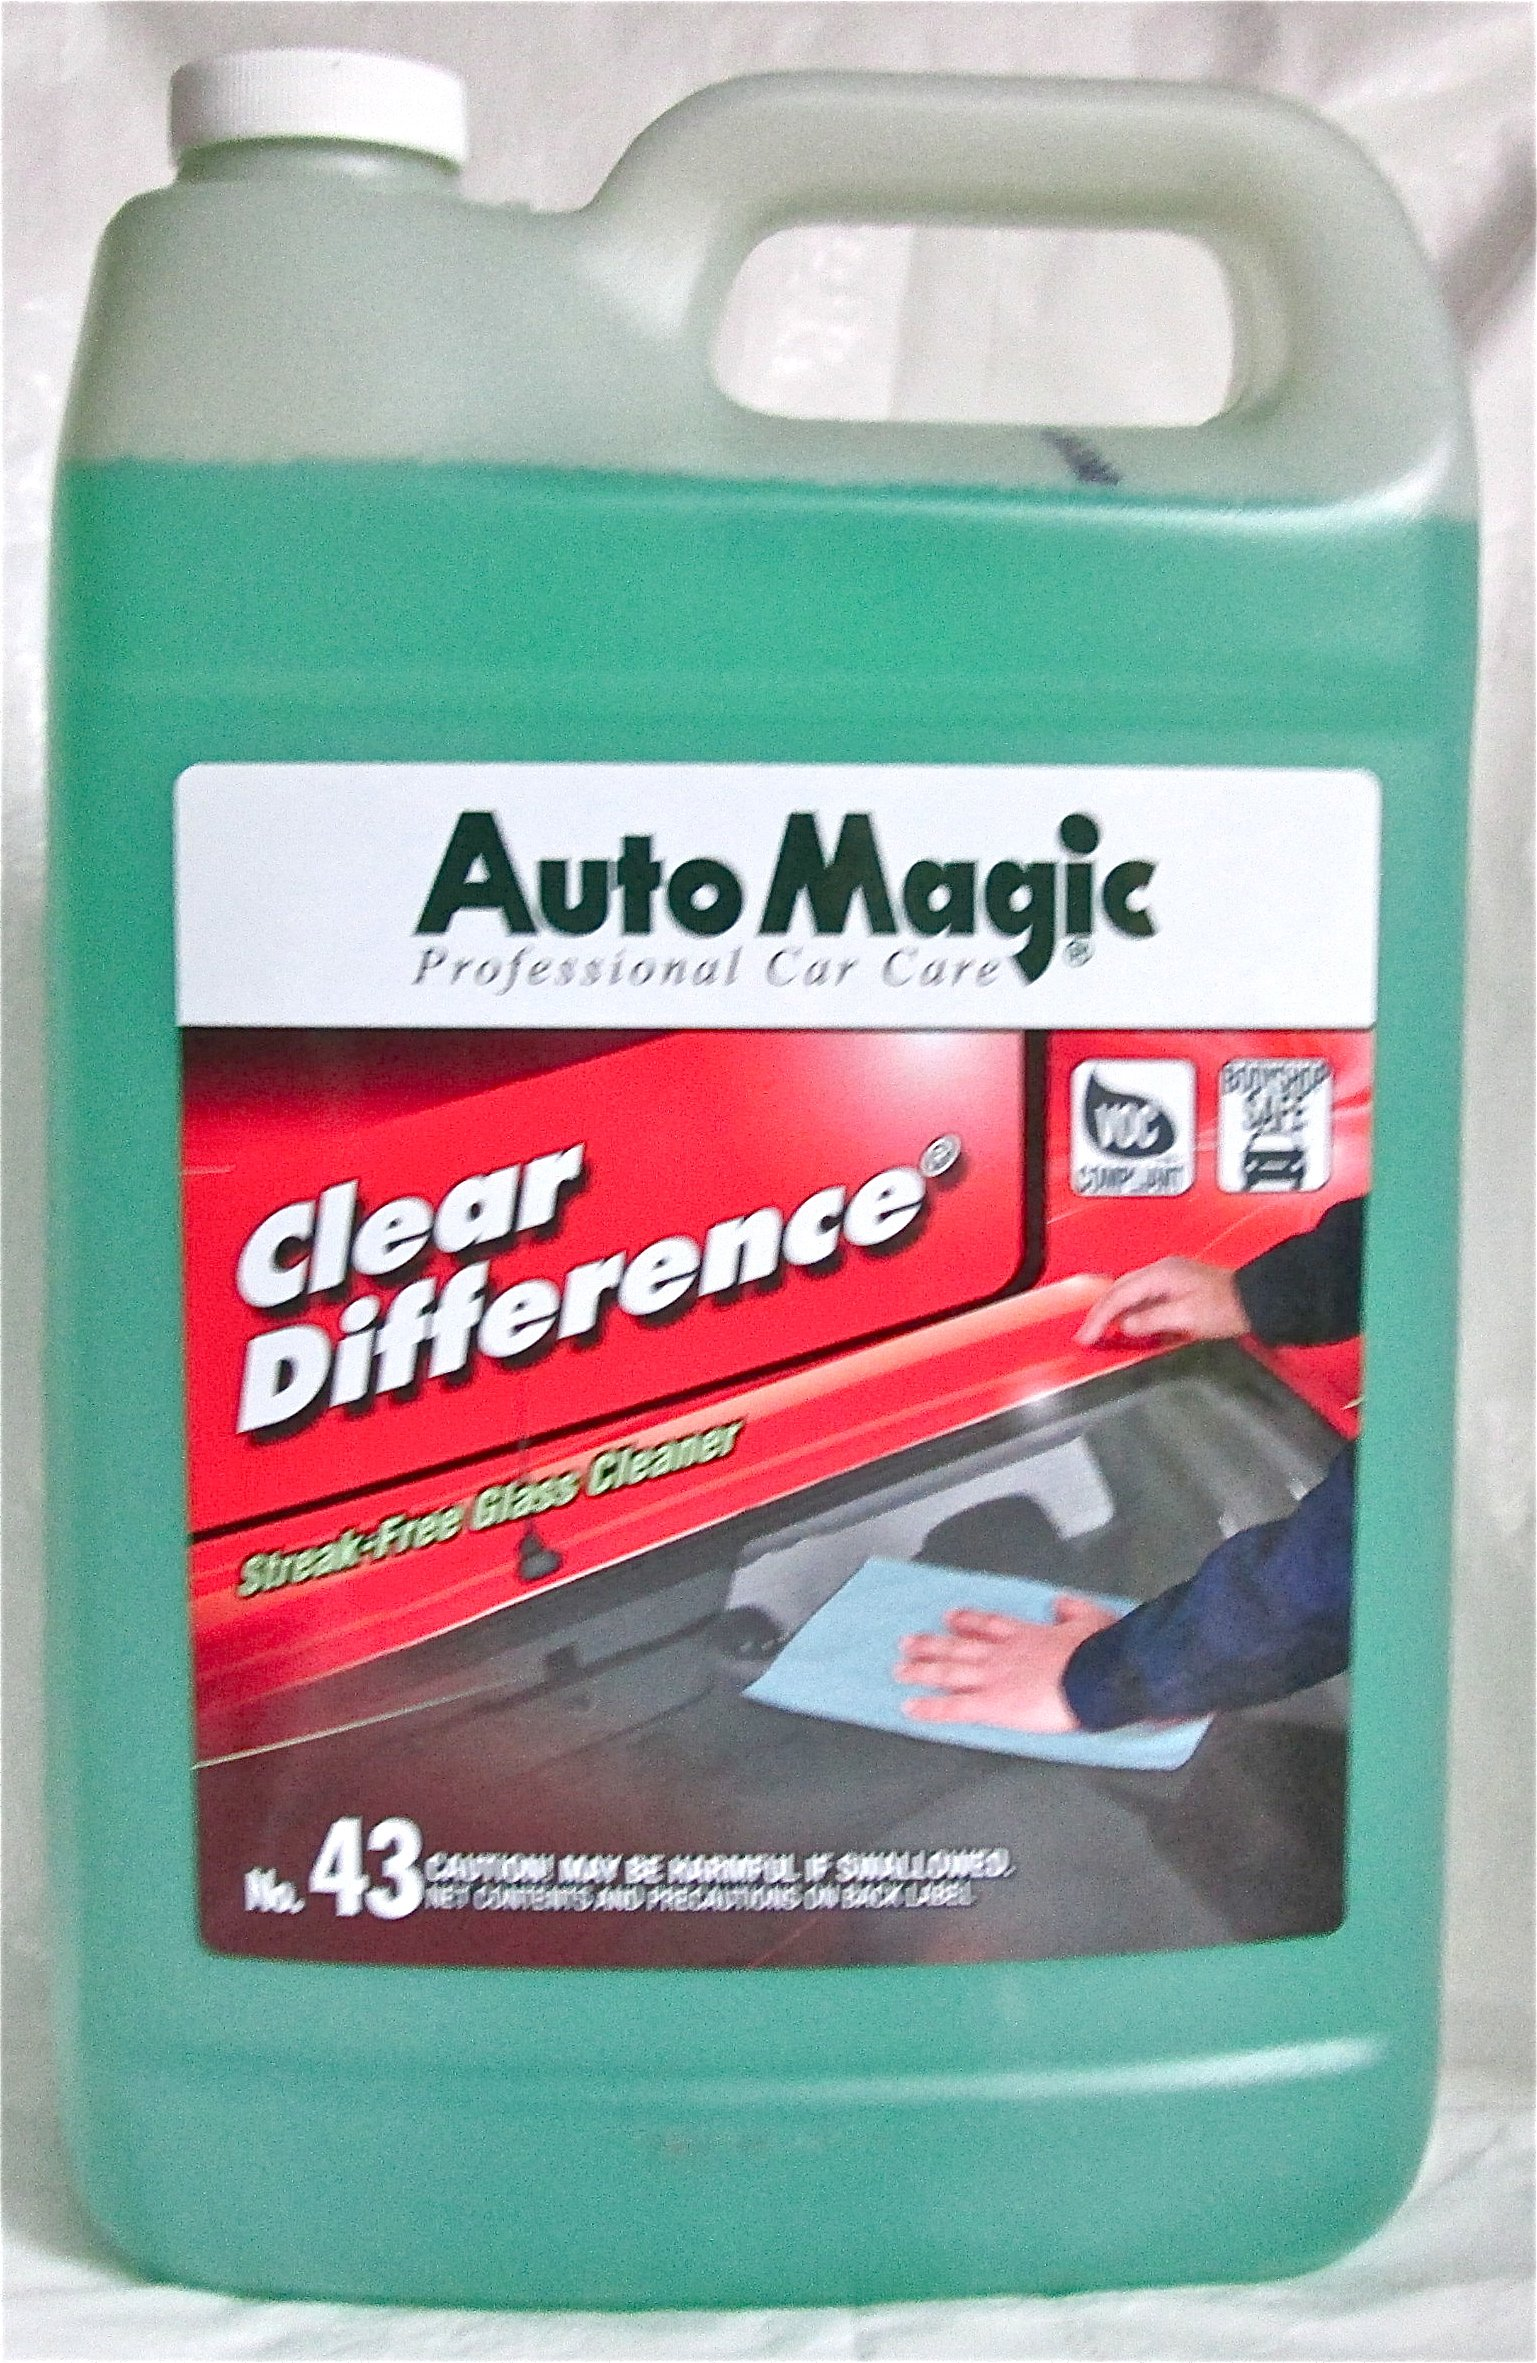 Auto Magic Clear Difference Glass Cleaner, Ready-to-use, 1 Gal